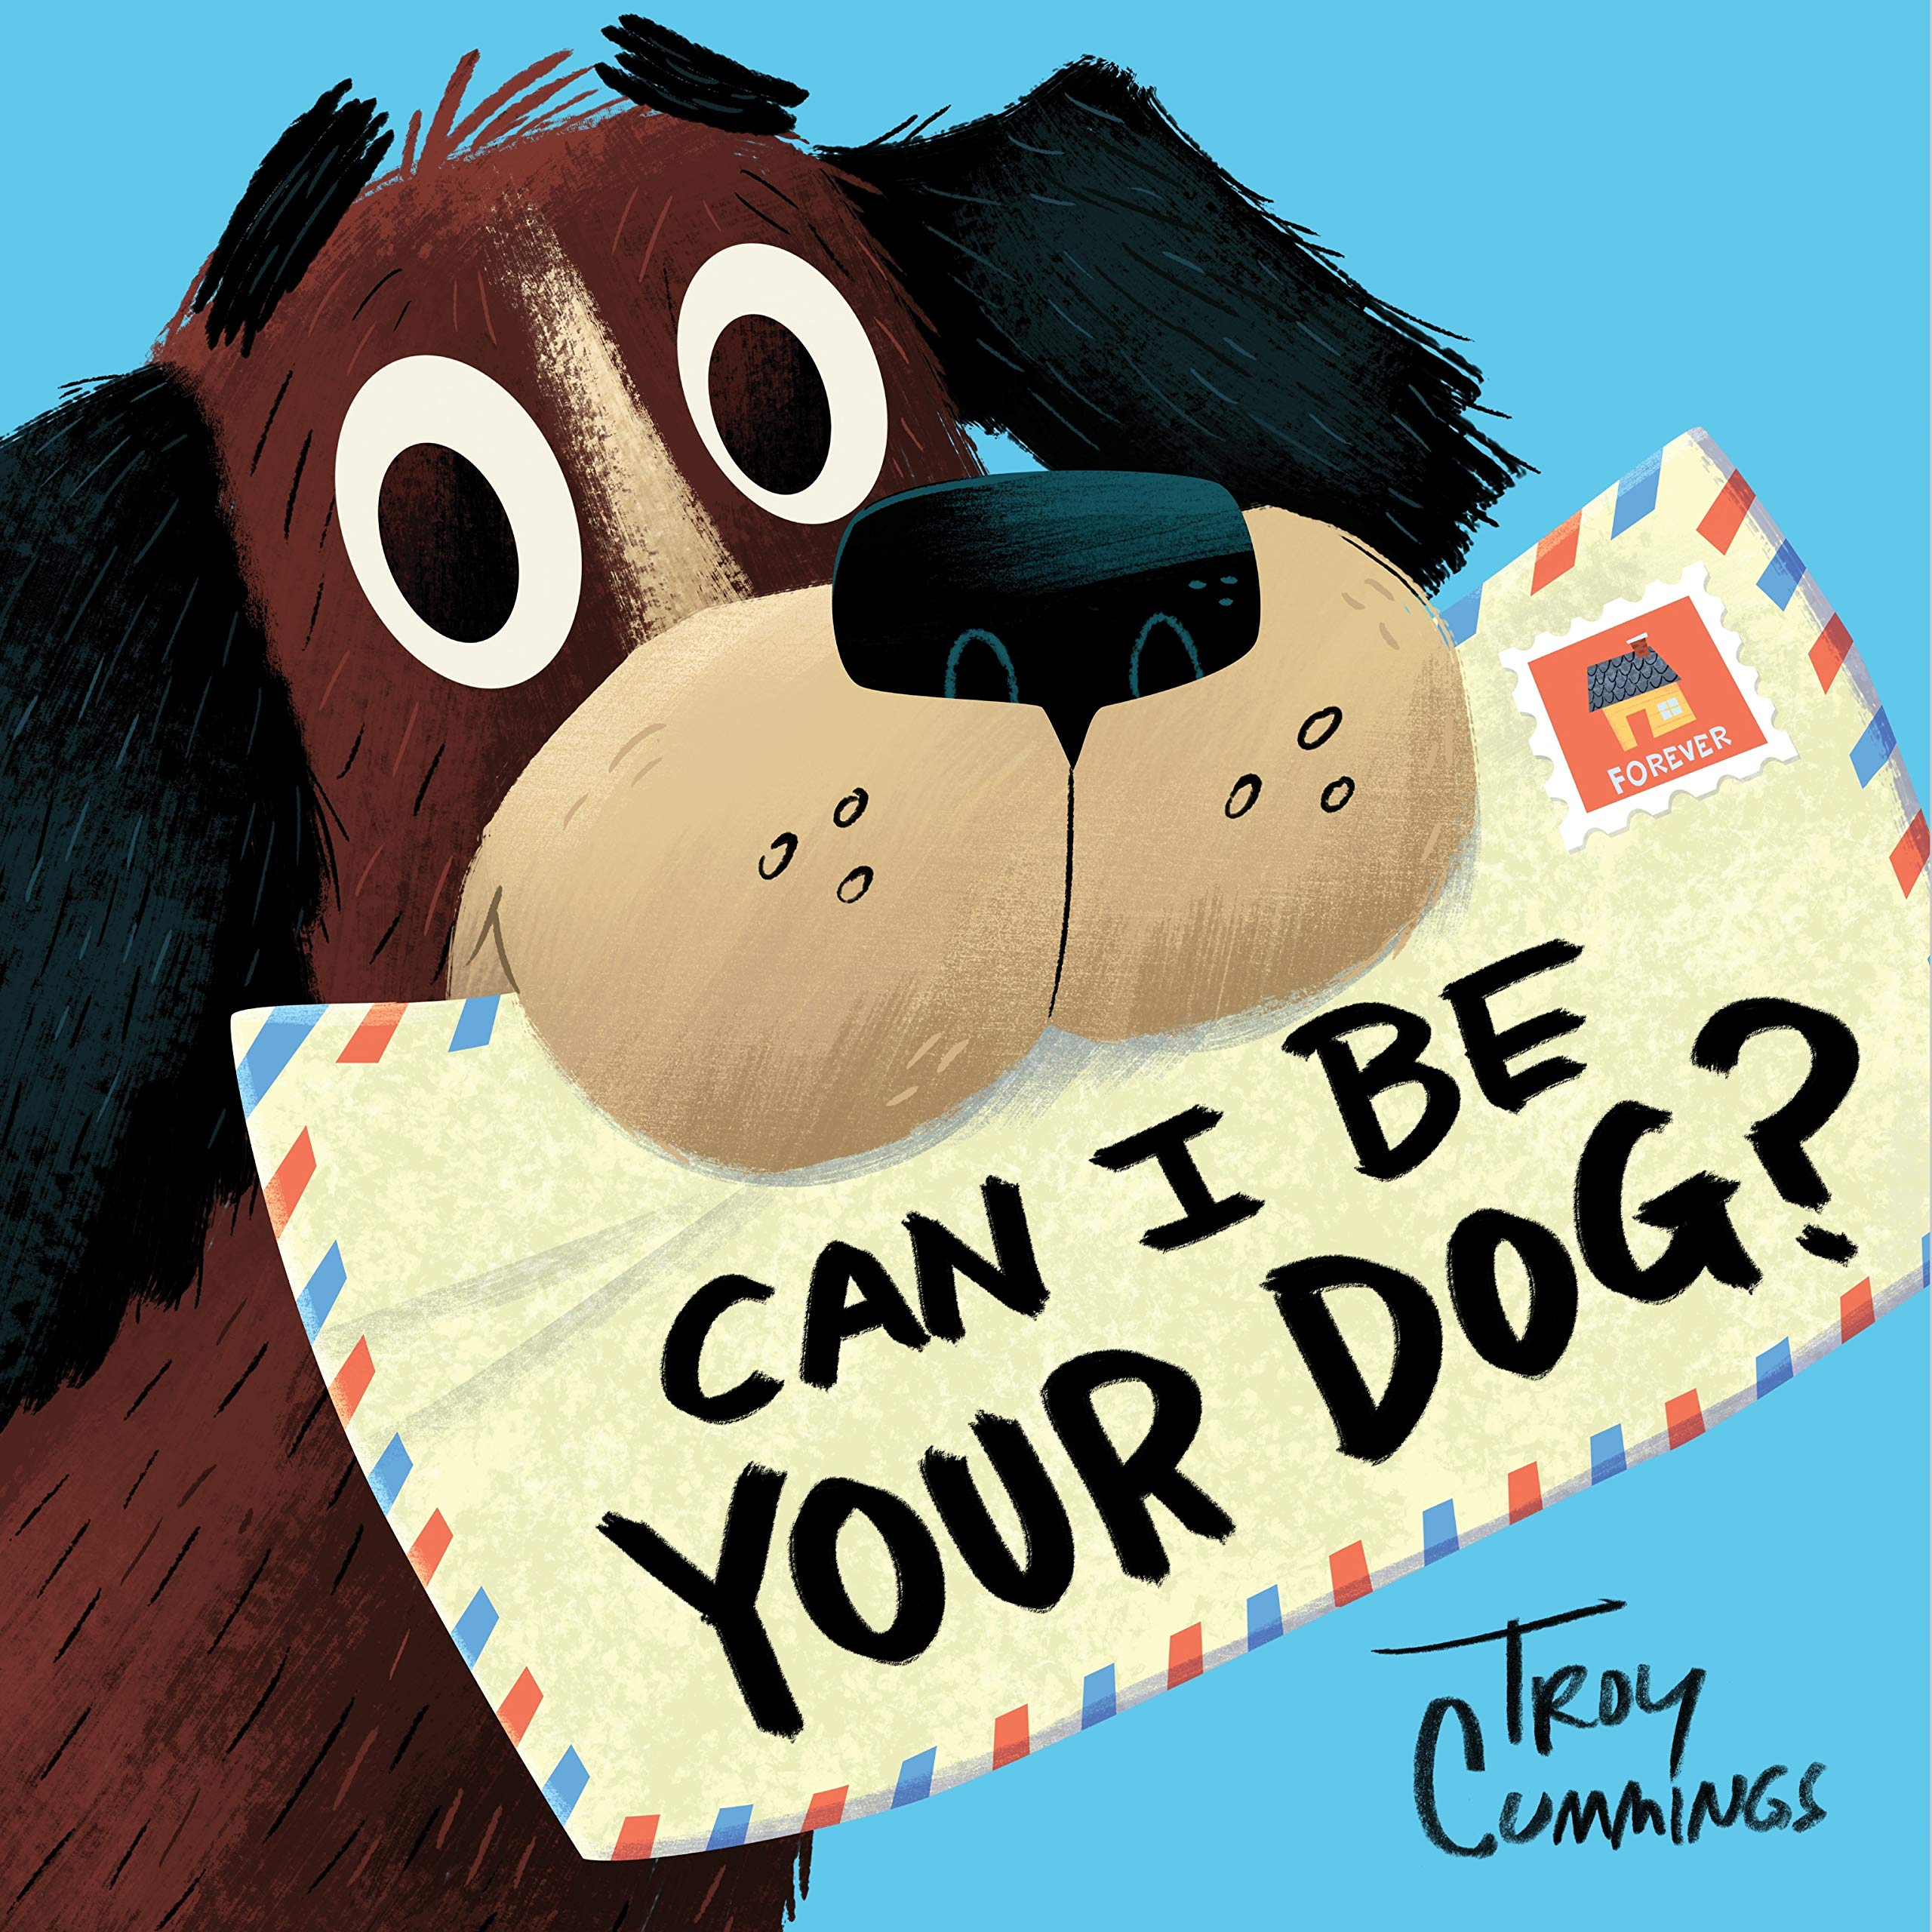 Can I Be Your Dog?: Cummings, Troy: 9780399554520: Amazon.com: Books